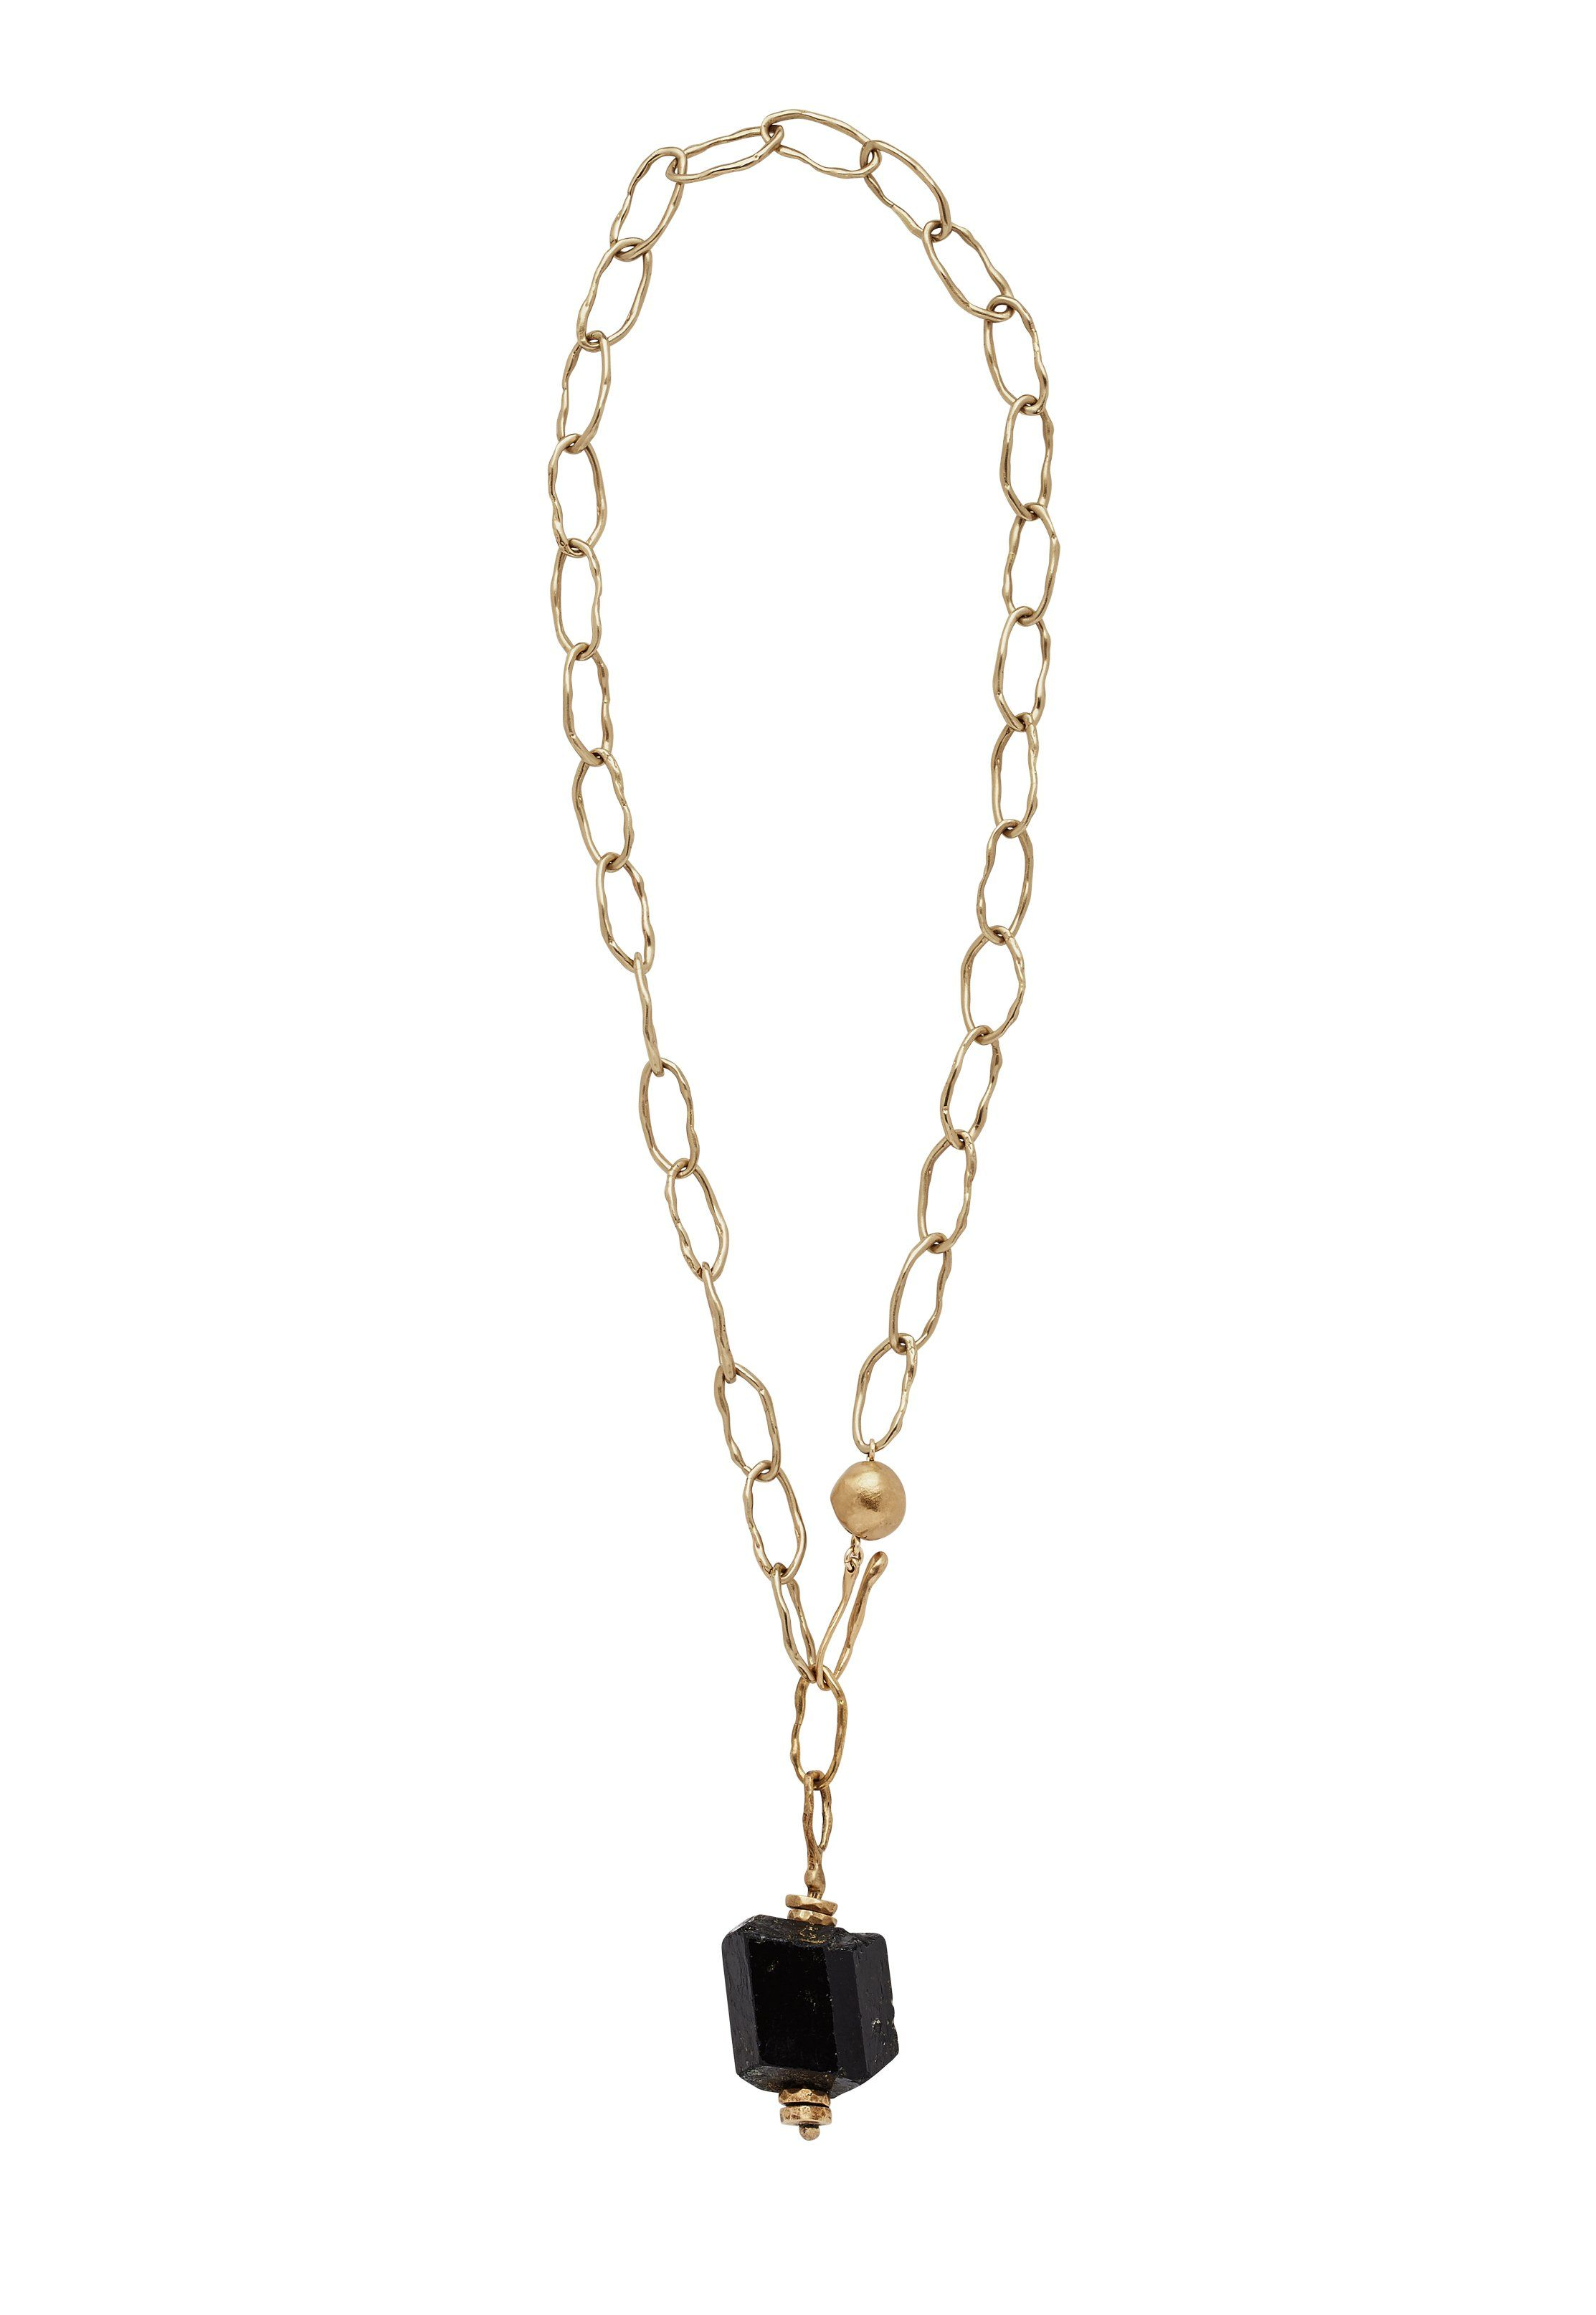 cfm gold pendant plated ion products at cross chain detail palmbeach filled jewelry and necklace chains